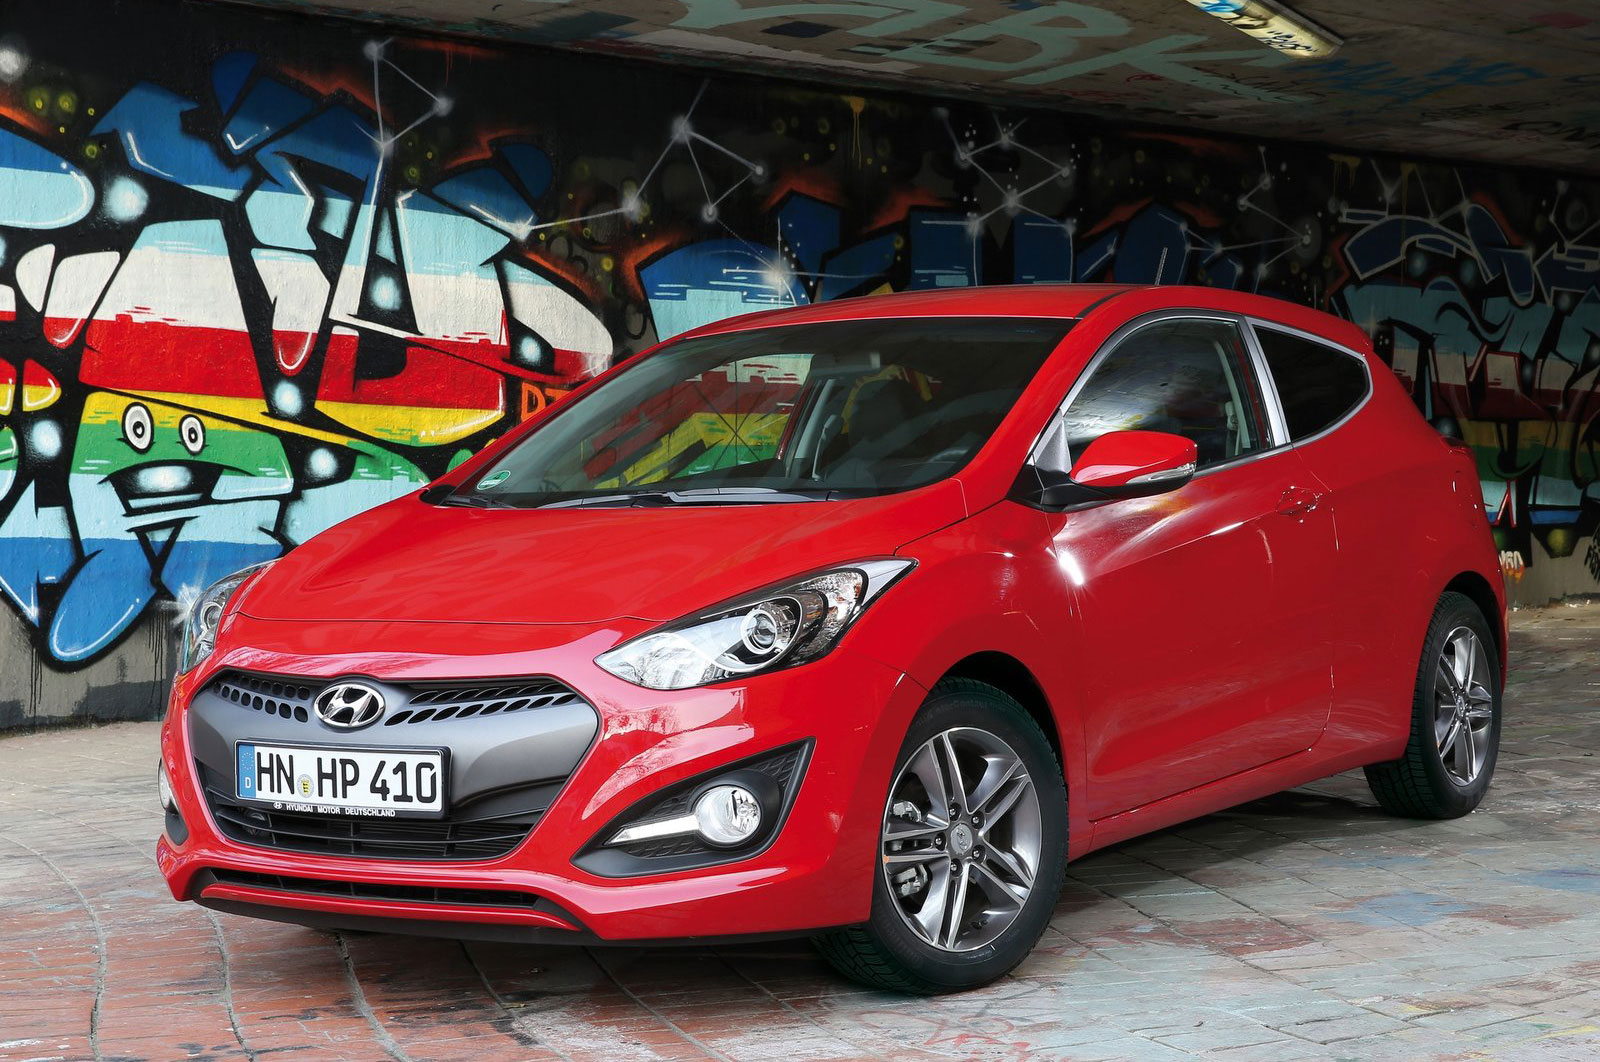 2019 Hyundai i30 3 door photo - 2